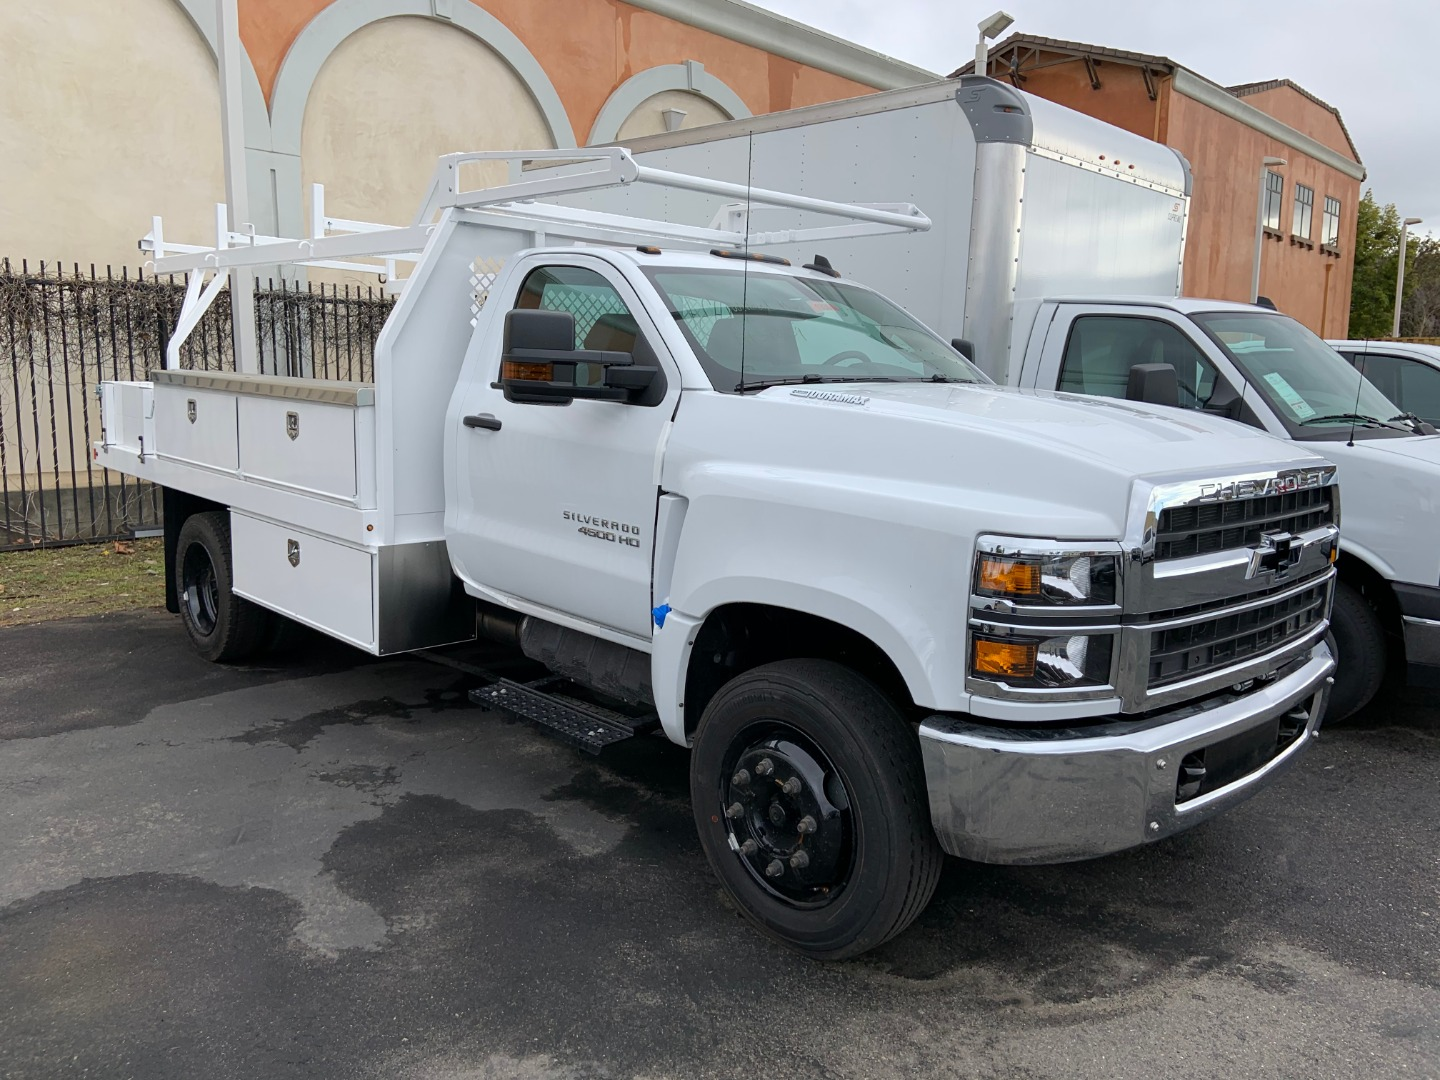 2019 Silverado 4500 Regular Cab DRW 4x2, Harbor Contractor Body #19364 - photo 1